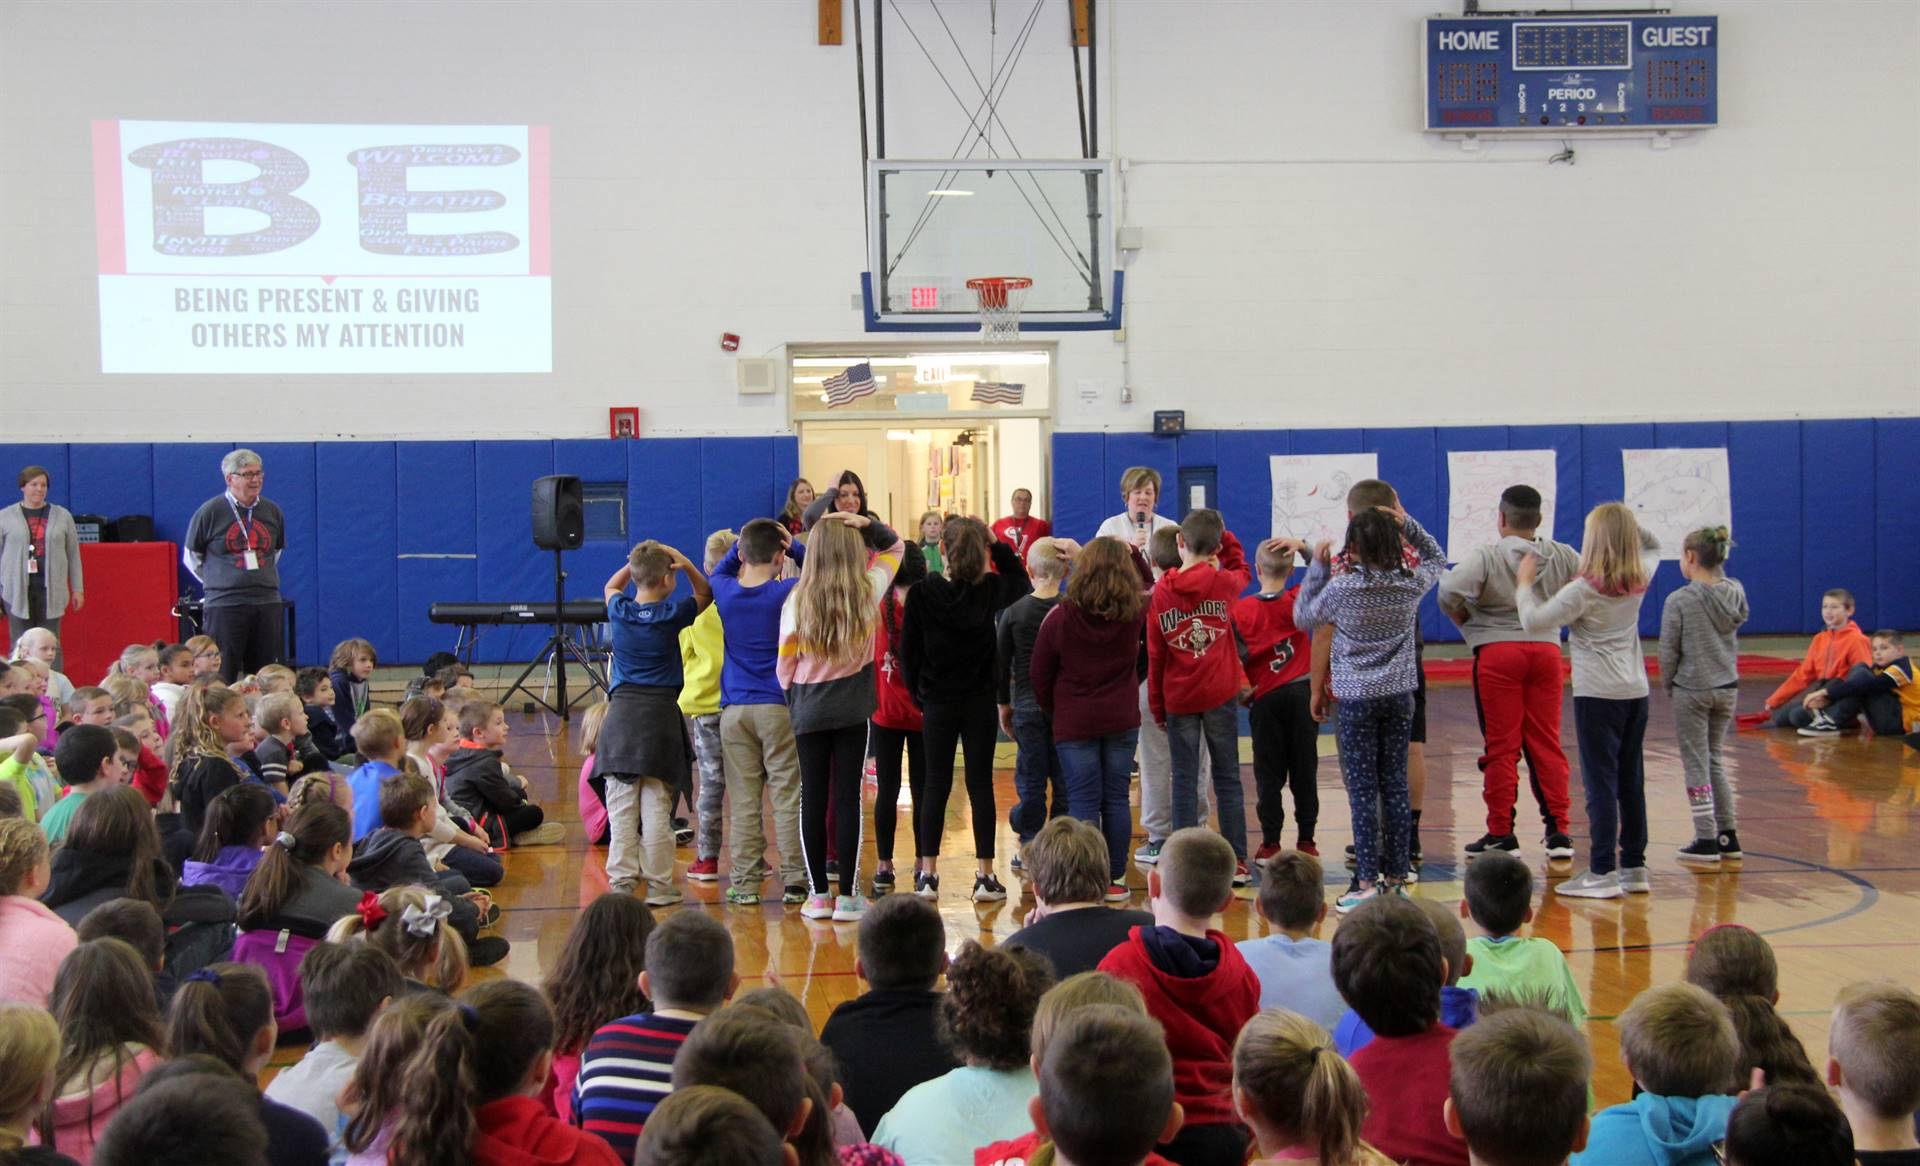 wide shot of students playing activity based on being present